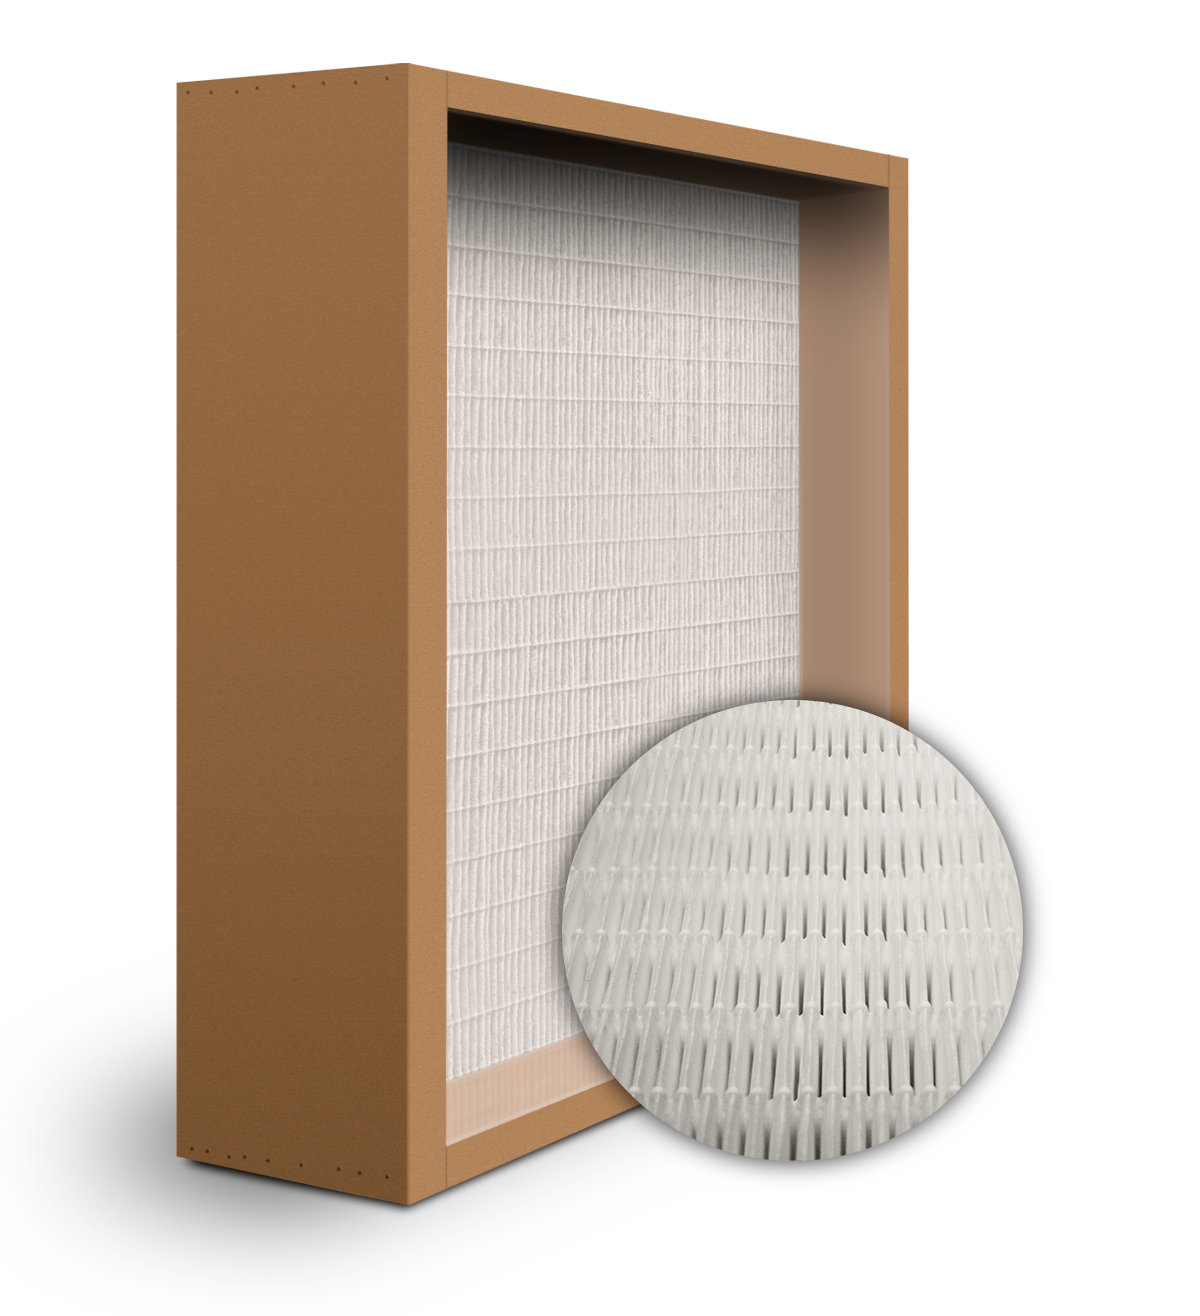 SuperFlo Max ASHRAE 65% (MERV 11/12) Particle Board Frame Mini Pleat Filter 20x20x6